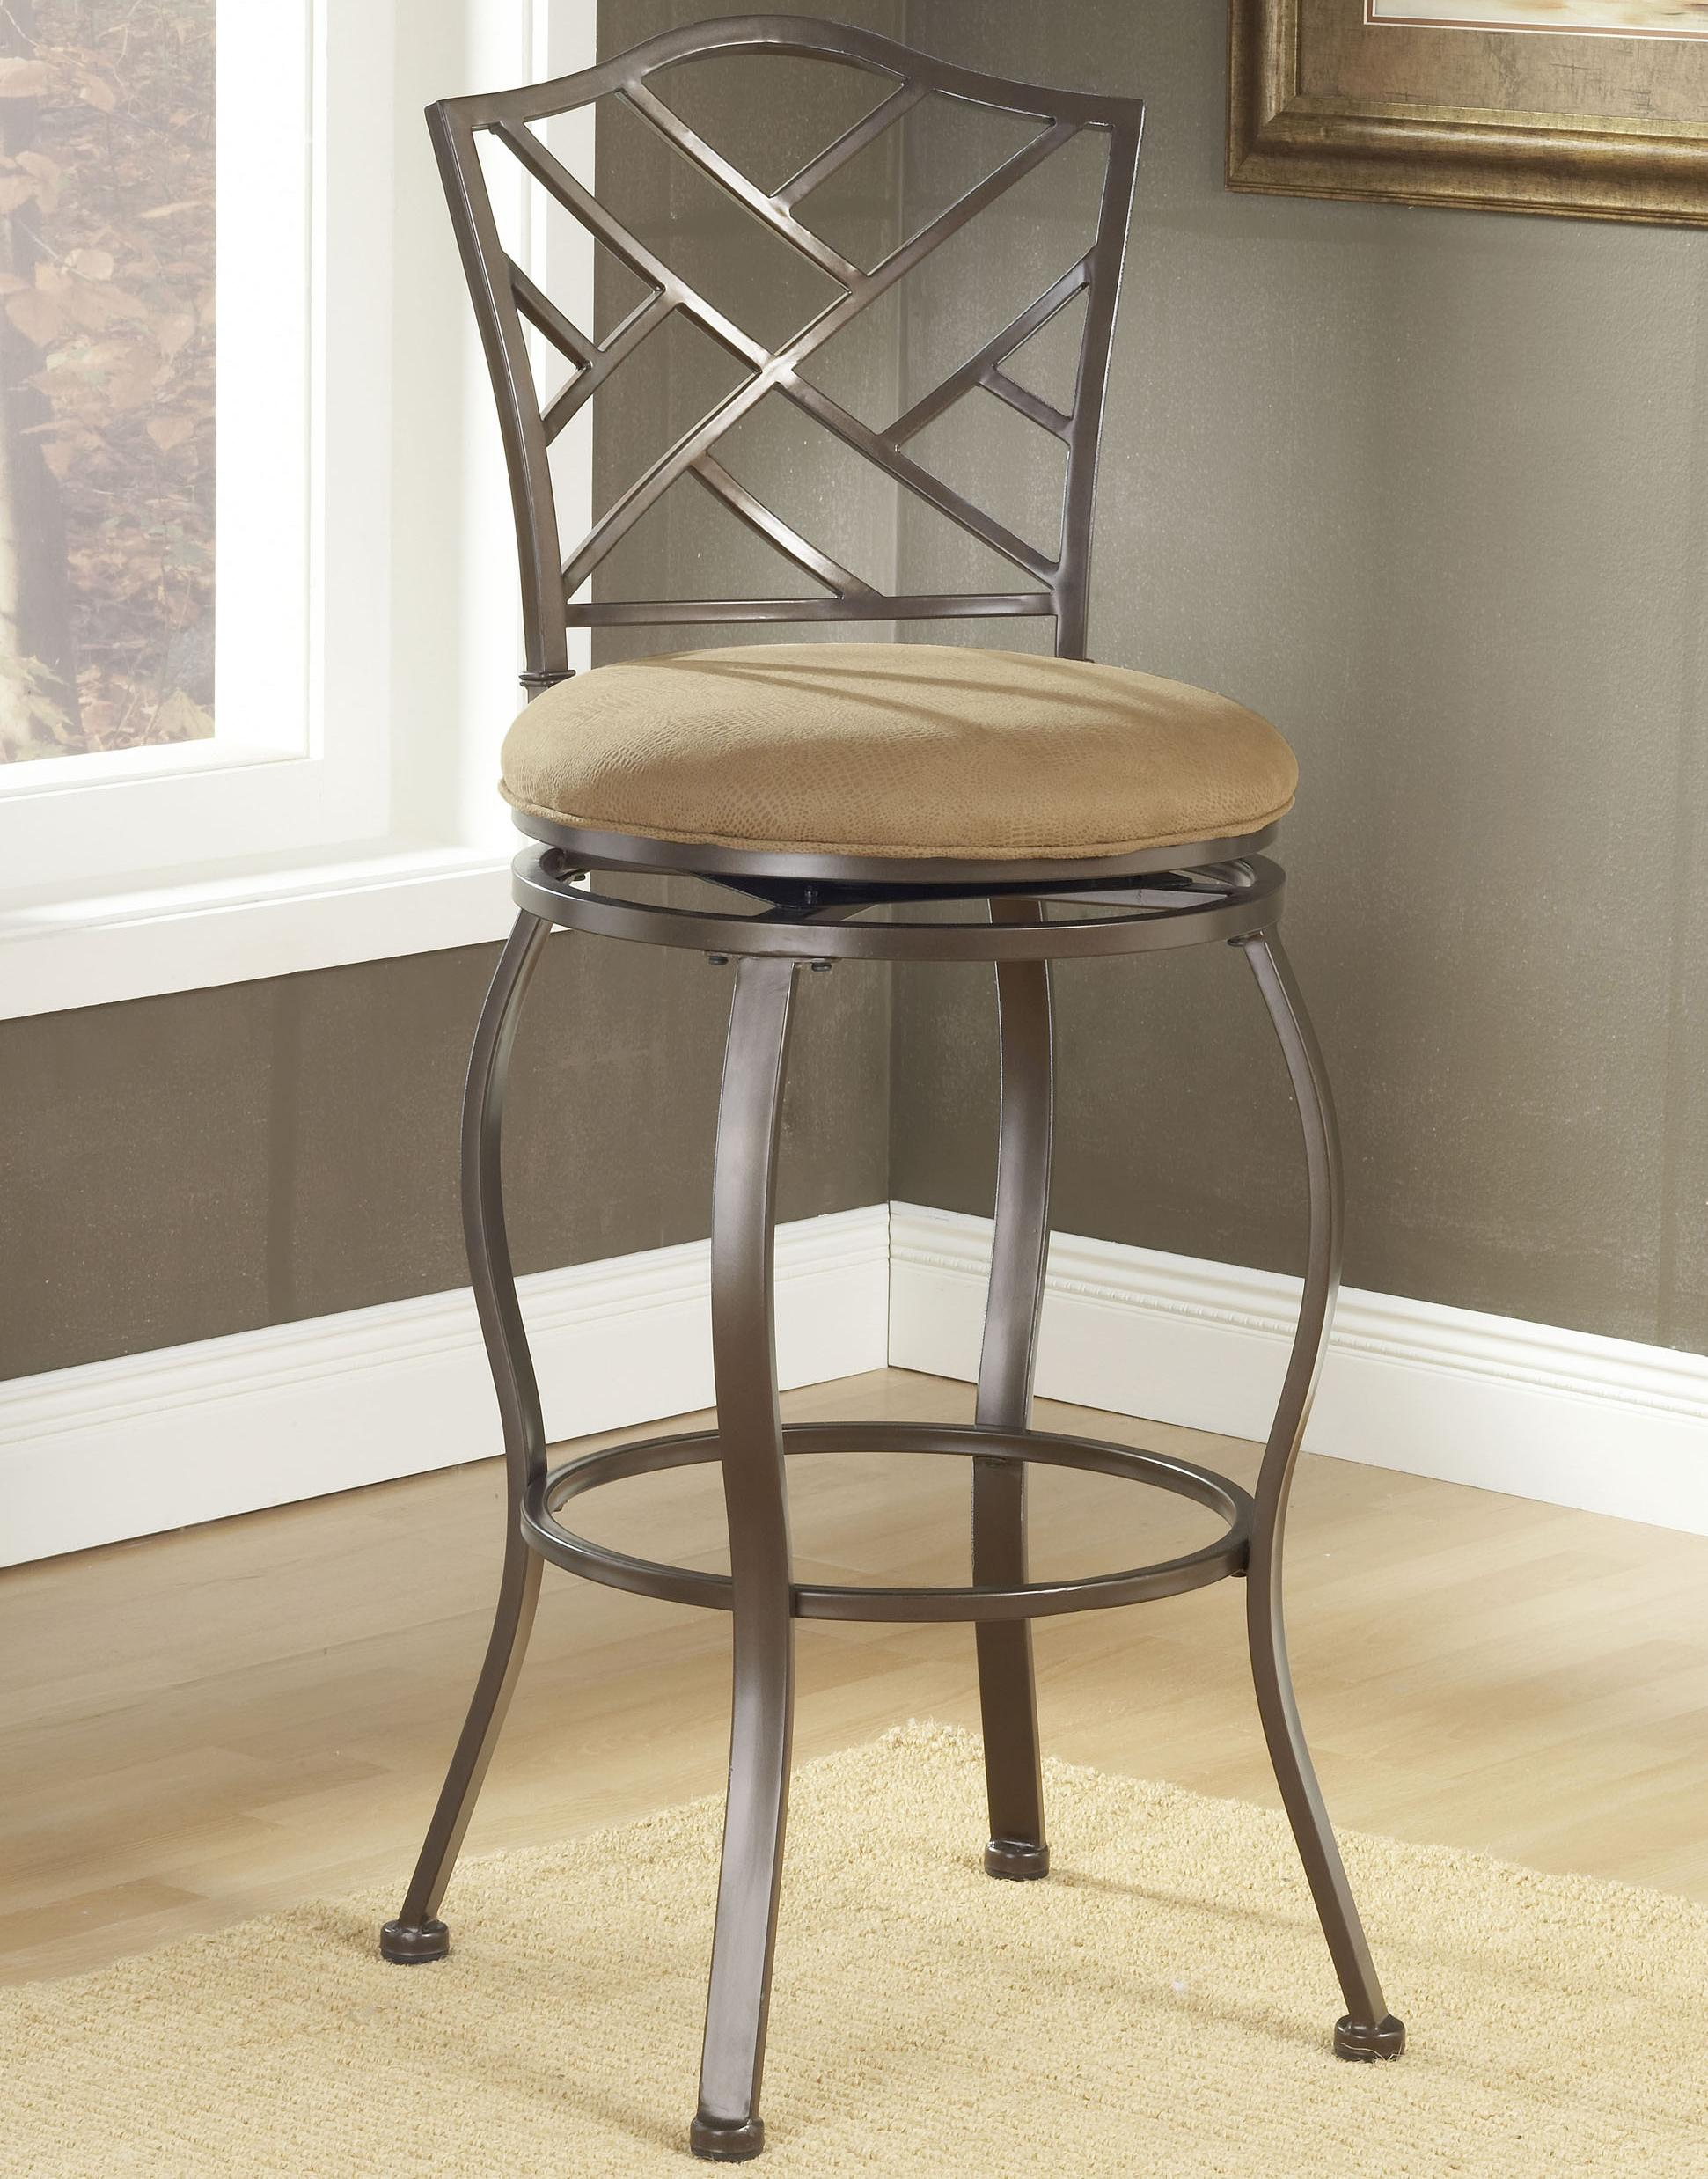 w height arms flow stool bar atl products counter varaluz steel stools